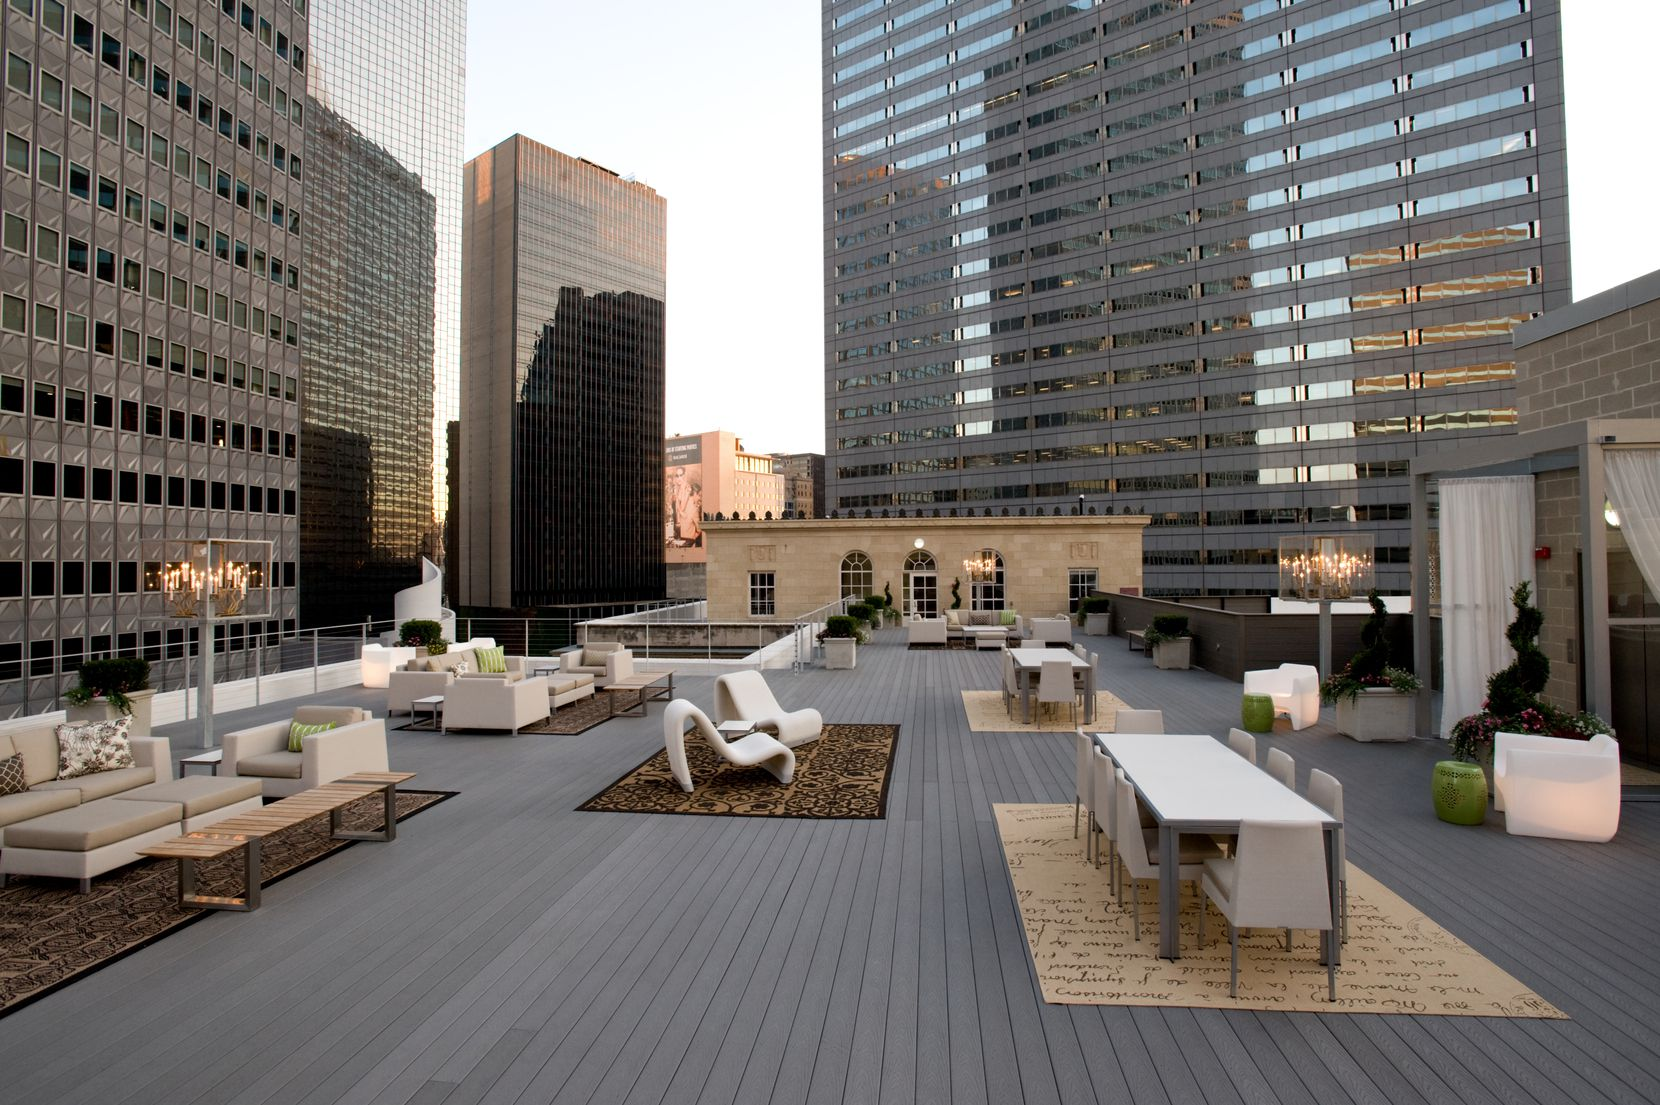 The rooftop patio at the 400 North Ervay apartment complex on top of the old post office.